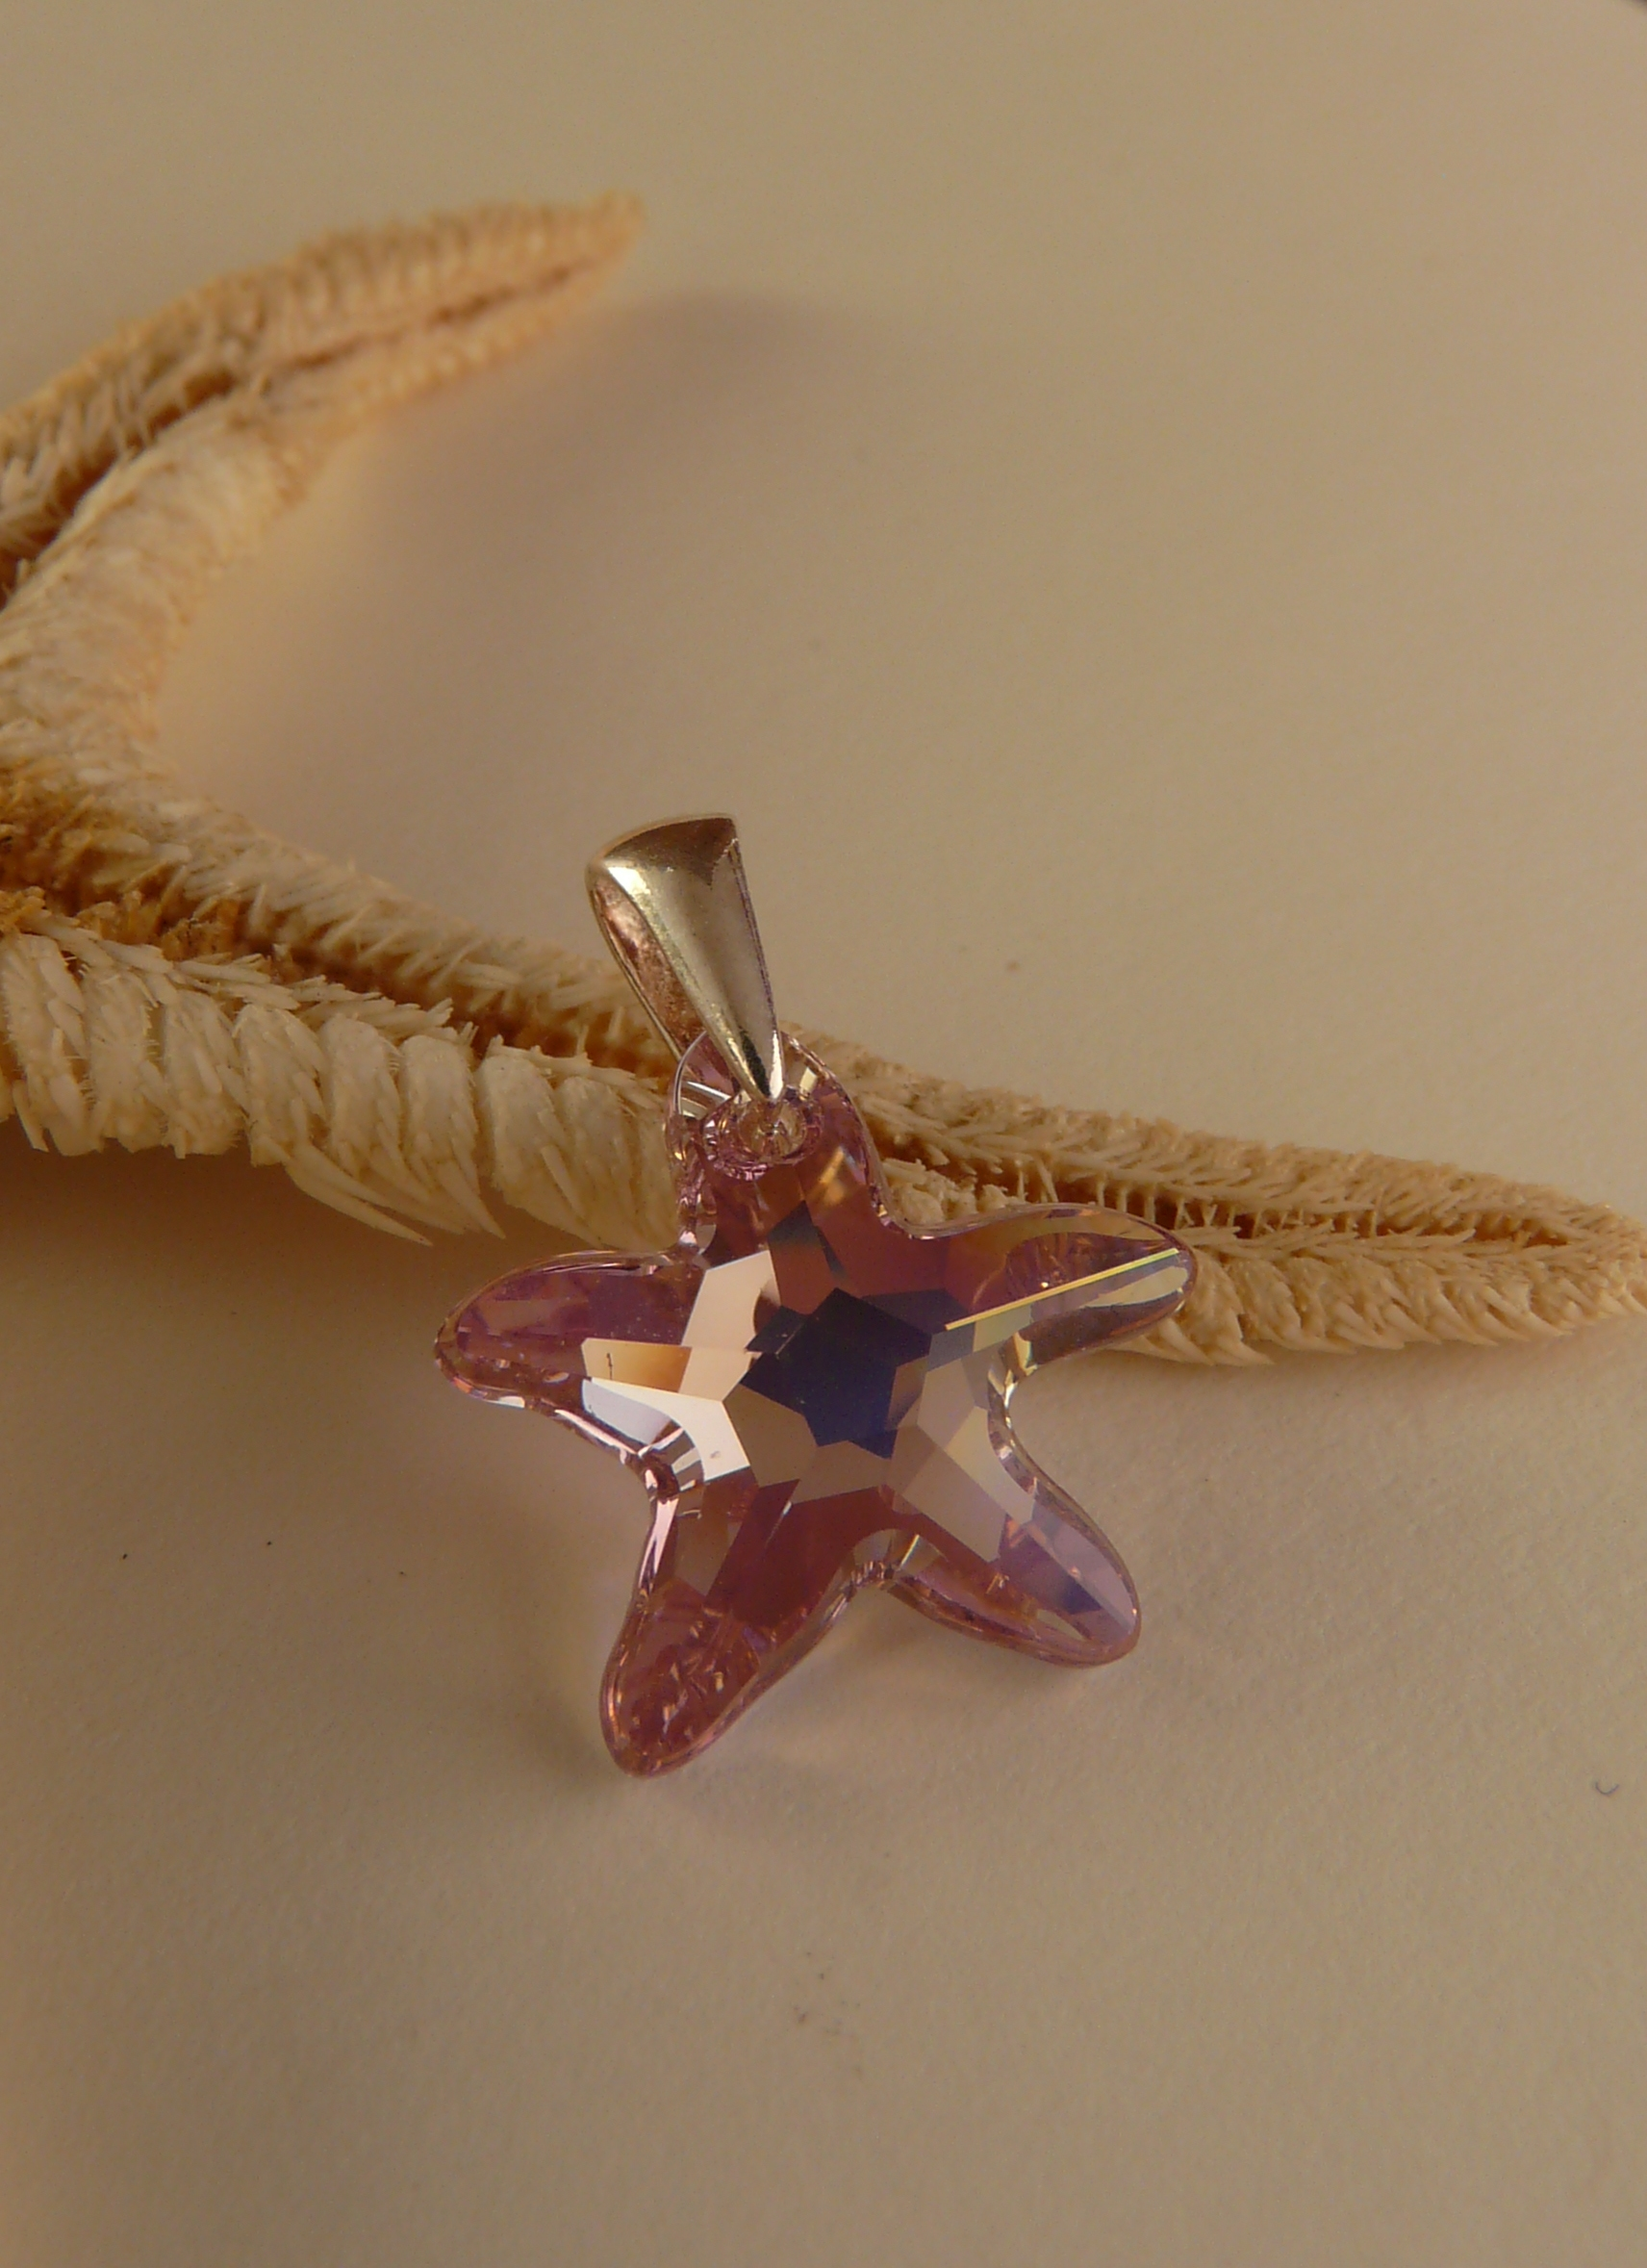 Přivěsek Starfish Light Amethyst Swarovski Elements sw077 striebro 925 0,44g